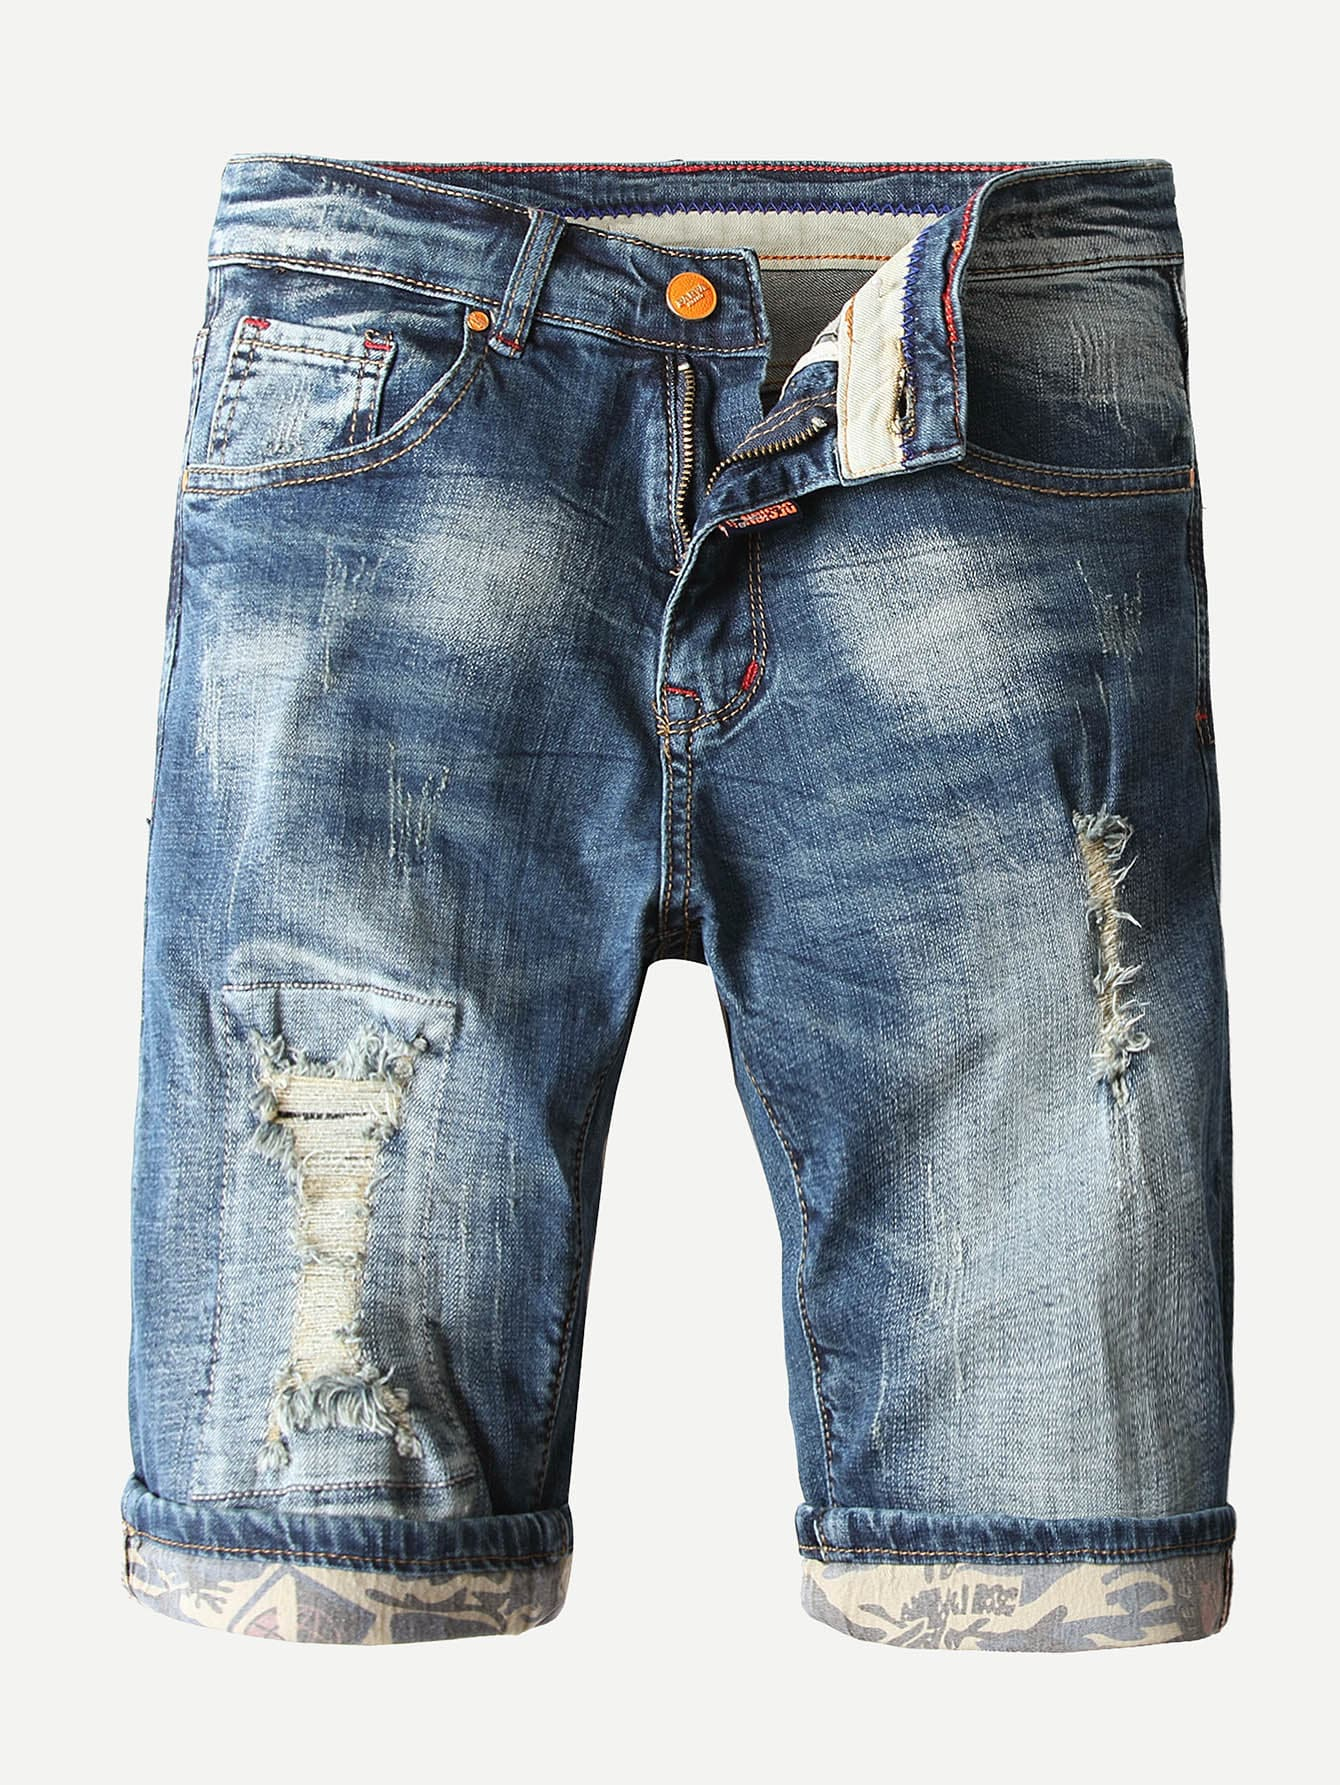 Men Destroyed Rolled Hem Denim Shorts Men Destroyed Rolled Hem Denim Shorts